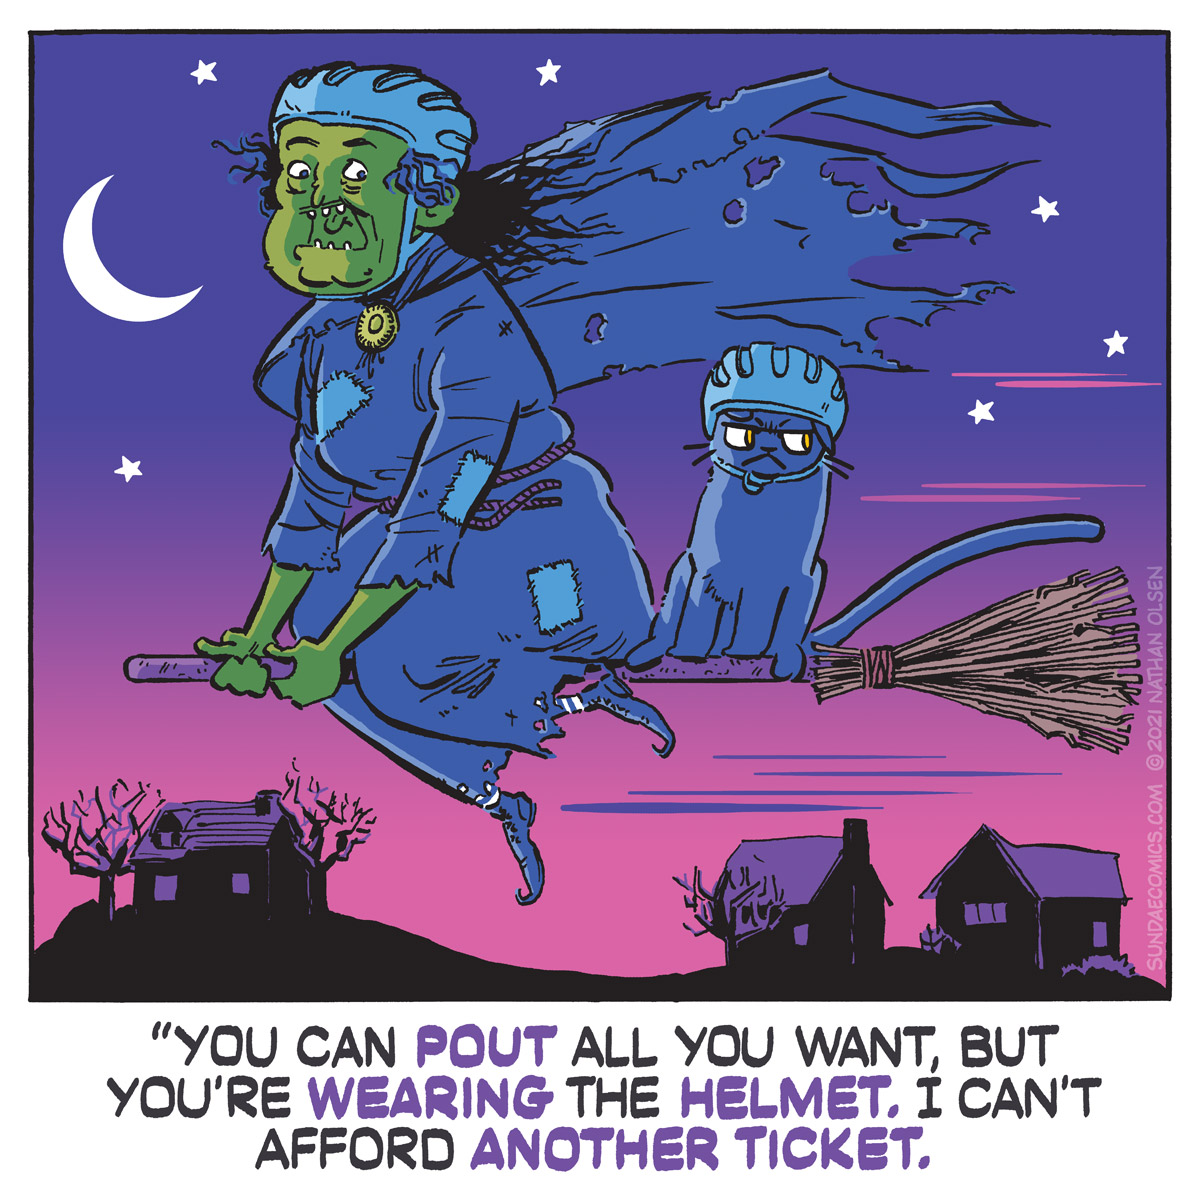 A humorous webcomic about a witch and her familiar looking totally uncool as they fly around town wearing bicycle helmets.